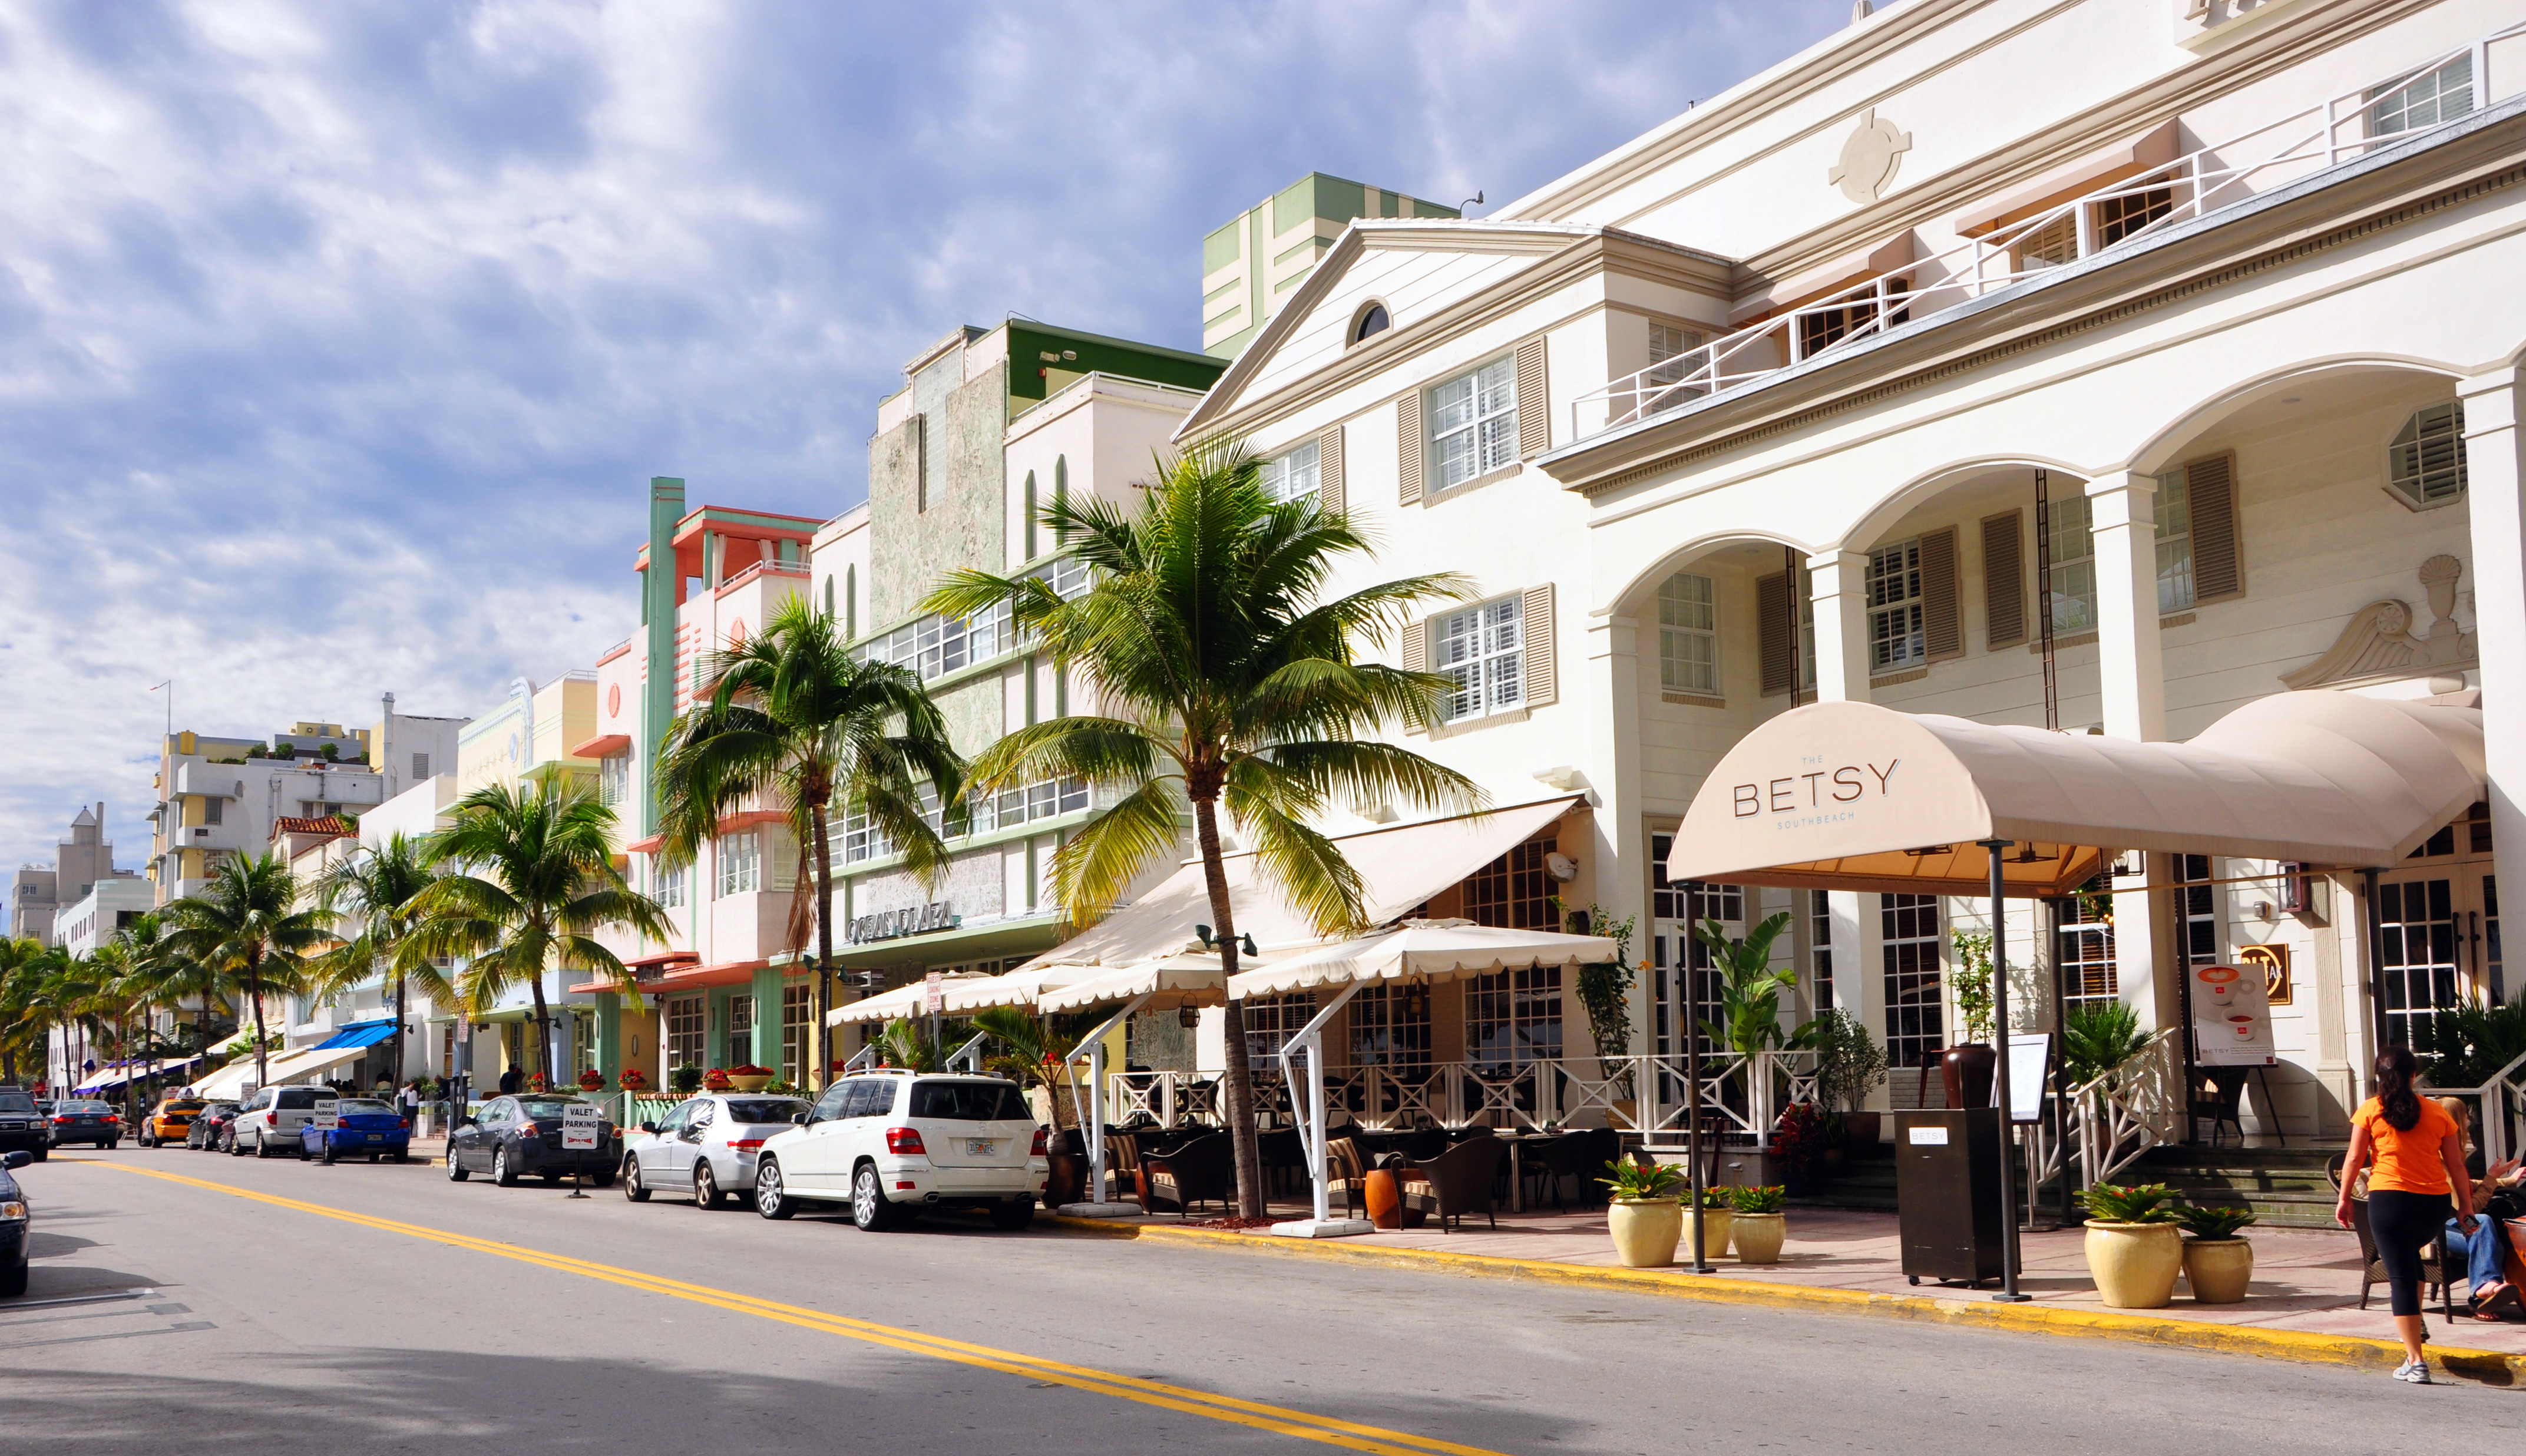 View the following Miami Beach Retail Space listings available for lease or rent.. LoopNet is the leading commercial real estate listing service with over billion sq ft of space for lease. Find retail space for lease like department stores, drug stores, garden centers and nurseries, showrooms, veterinary and kennel properties or any other storefront retail property for your next business.